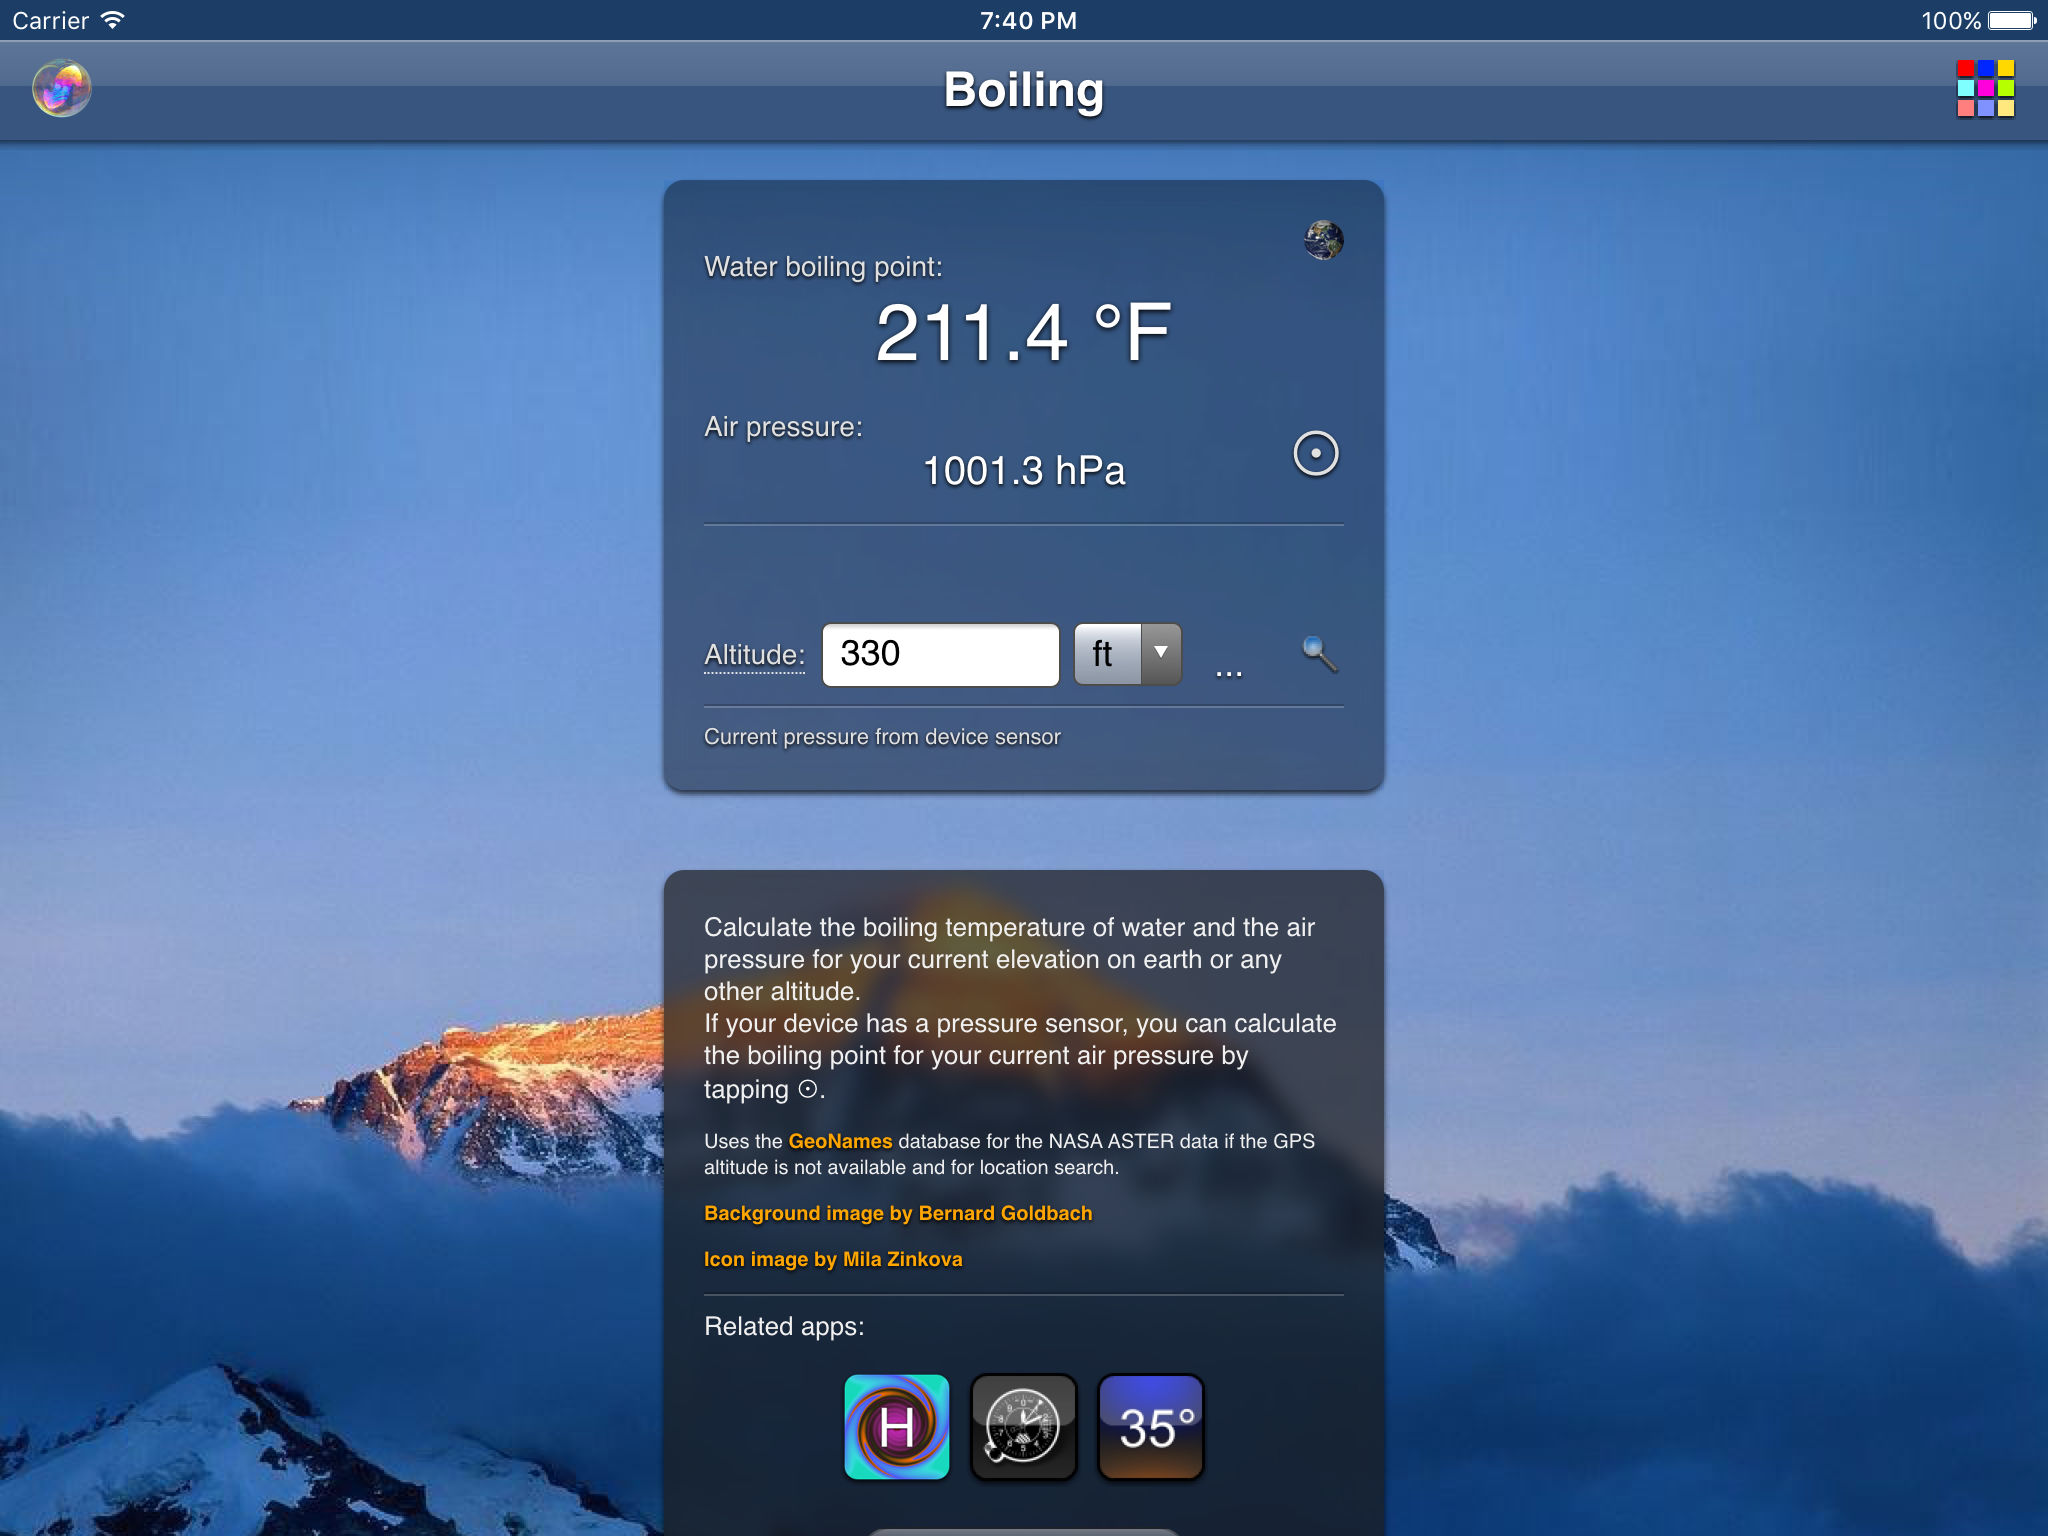 Boiling App Ranking And Store Data App Annie - Current elevation app